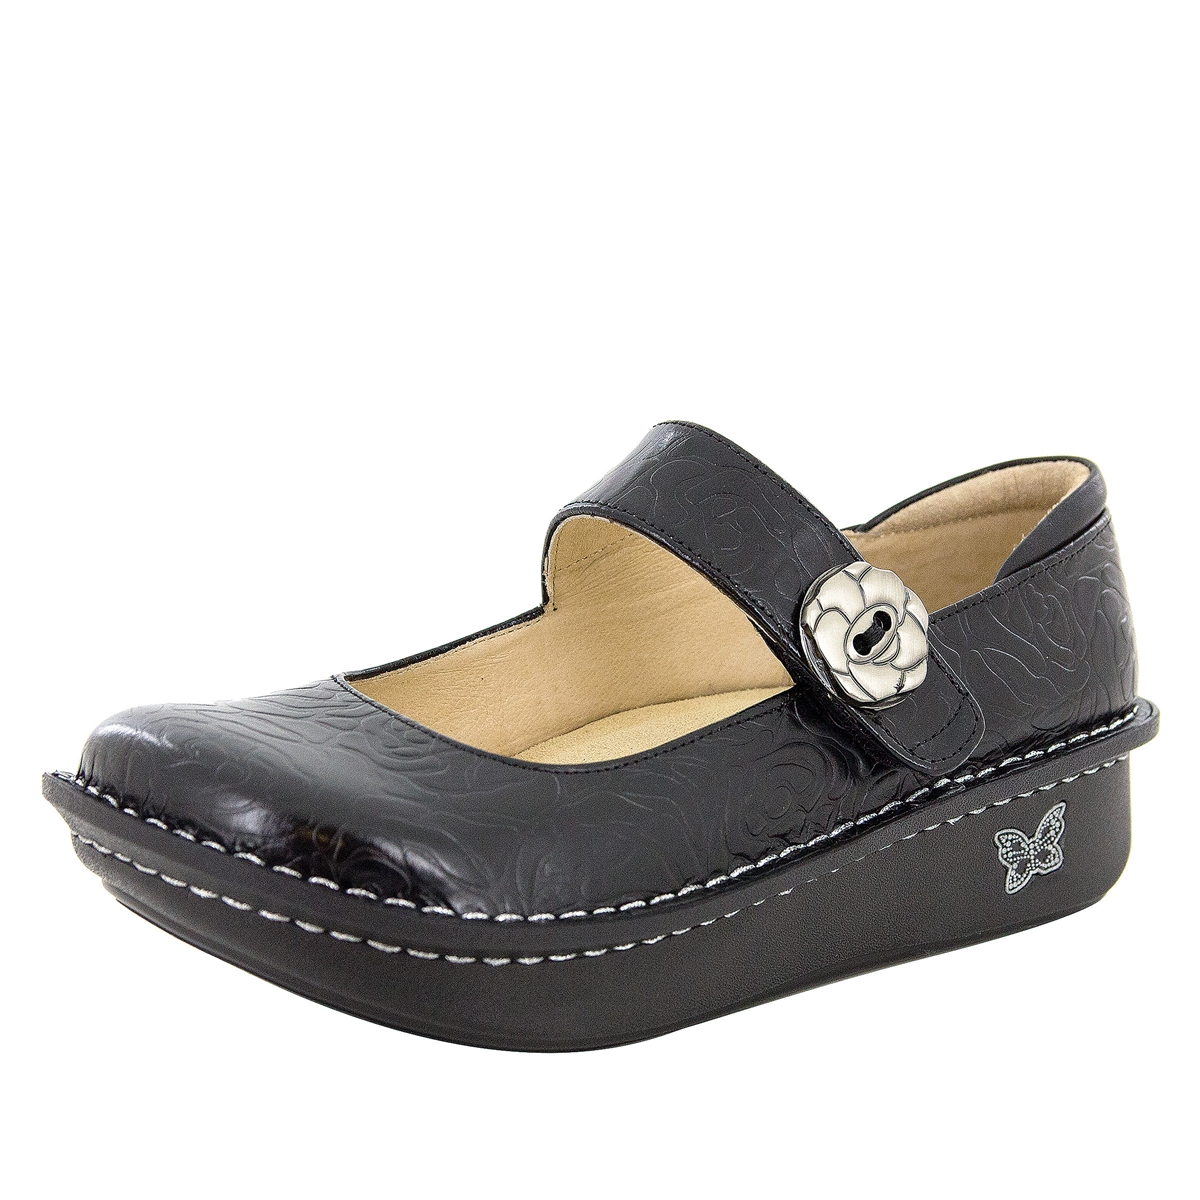 Alegria Paloma Black Embossed Rose Comfort Style Mary Janes